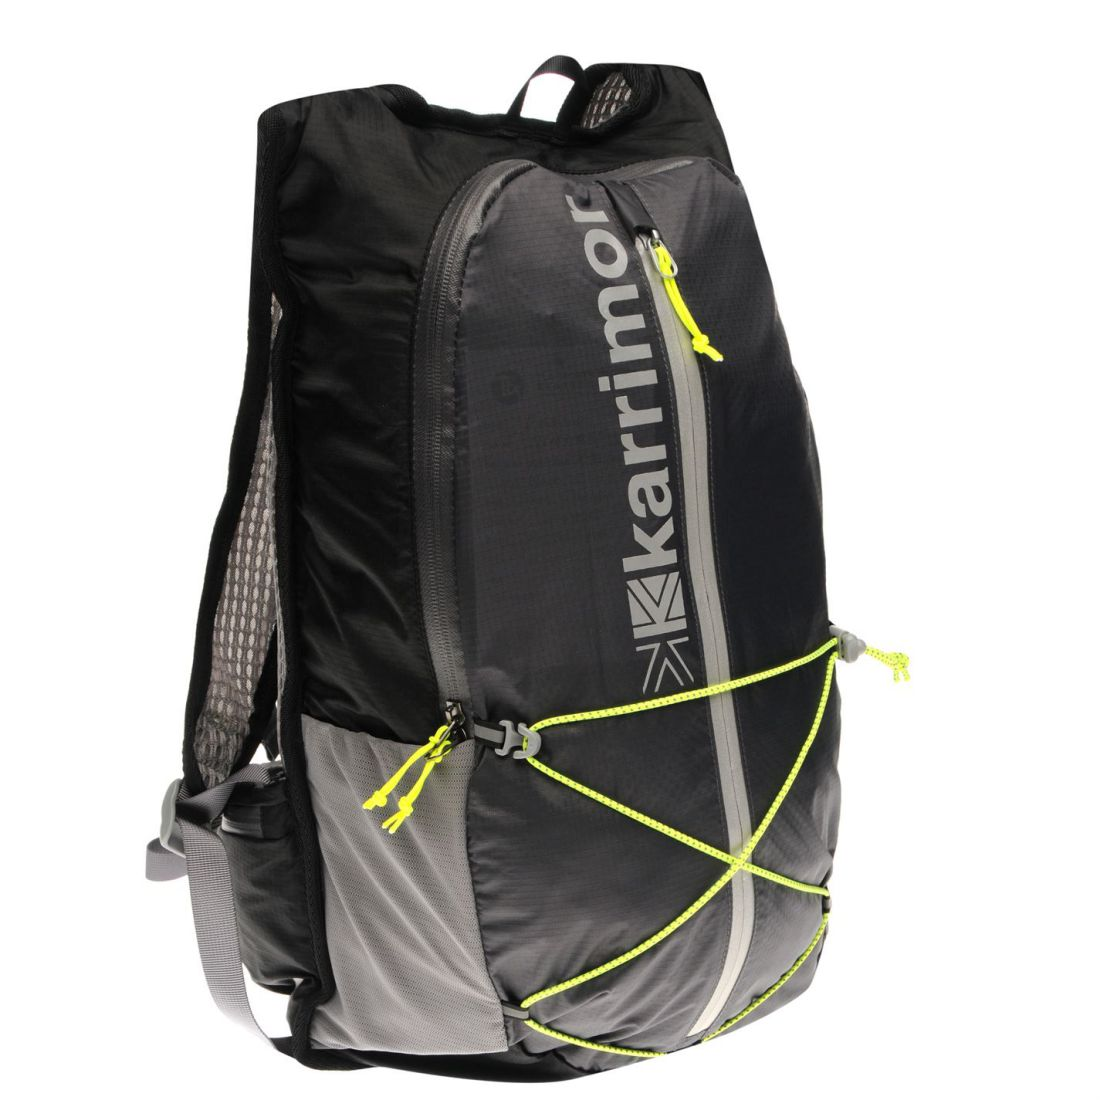 Karrimor-X-Lite-15L-Running-Back-Pack-Travel-Luggage-Everyday-Casual-Bag-New